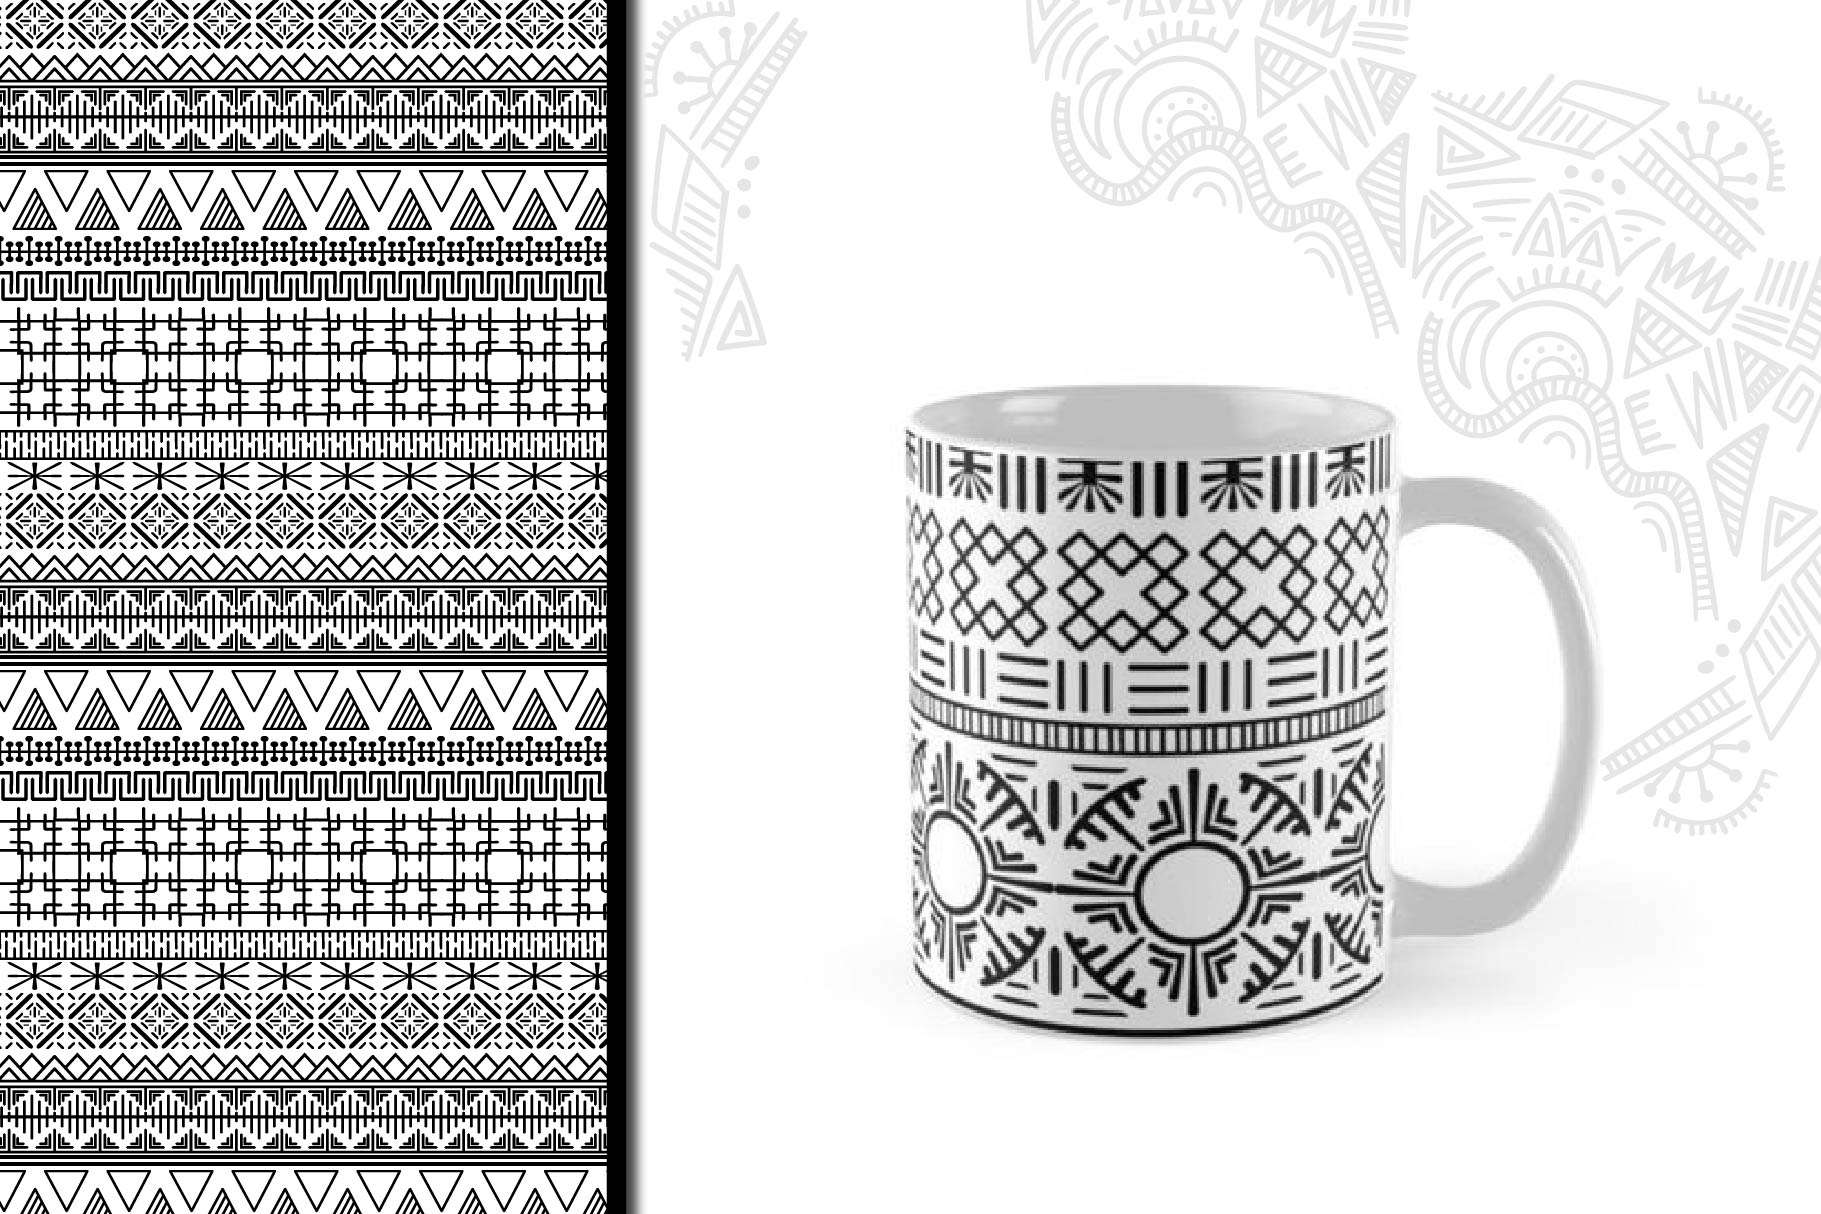 Black and White Ethnic Seamless example image 2